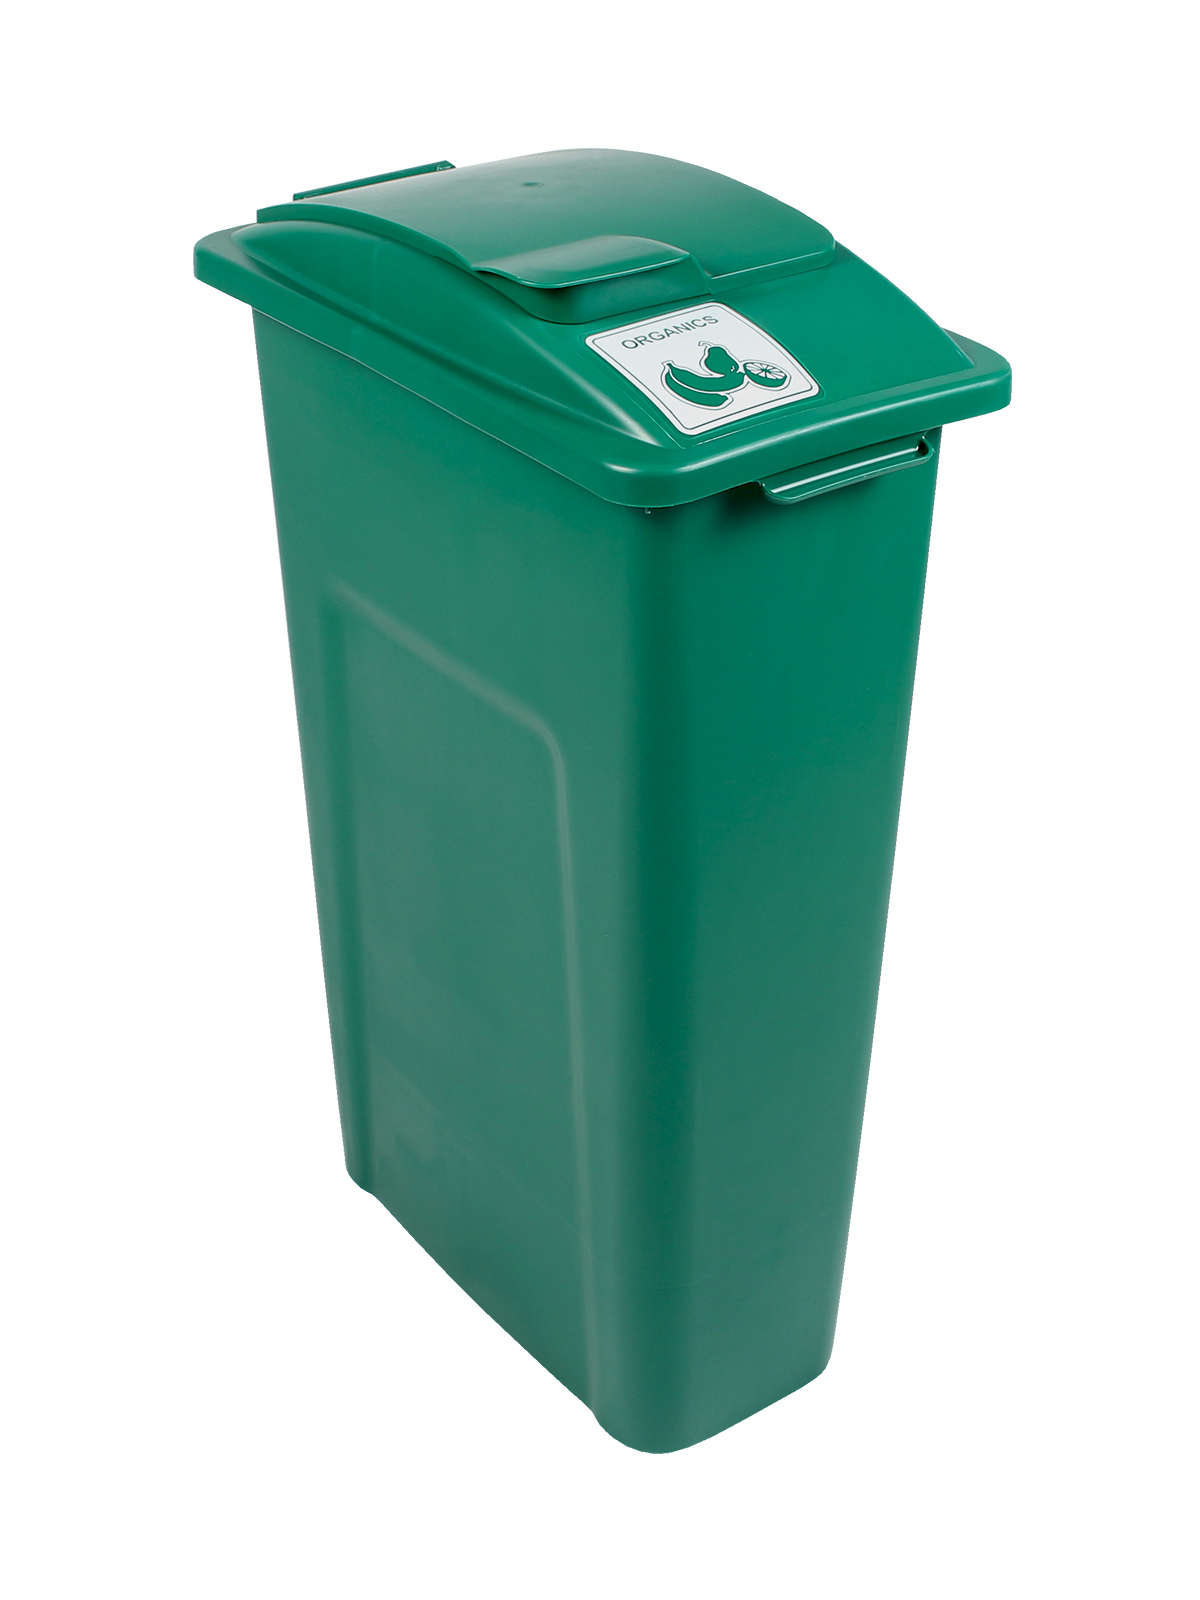 WASTE WATCHER - Single - Organics - Solid Lift - Green